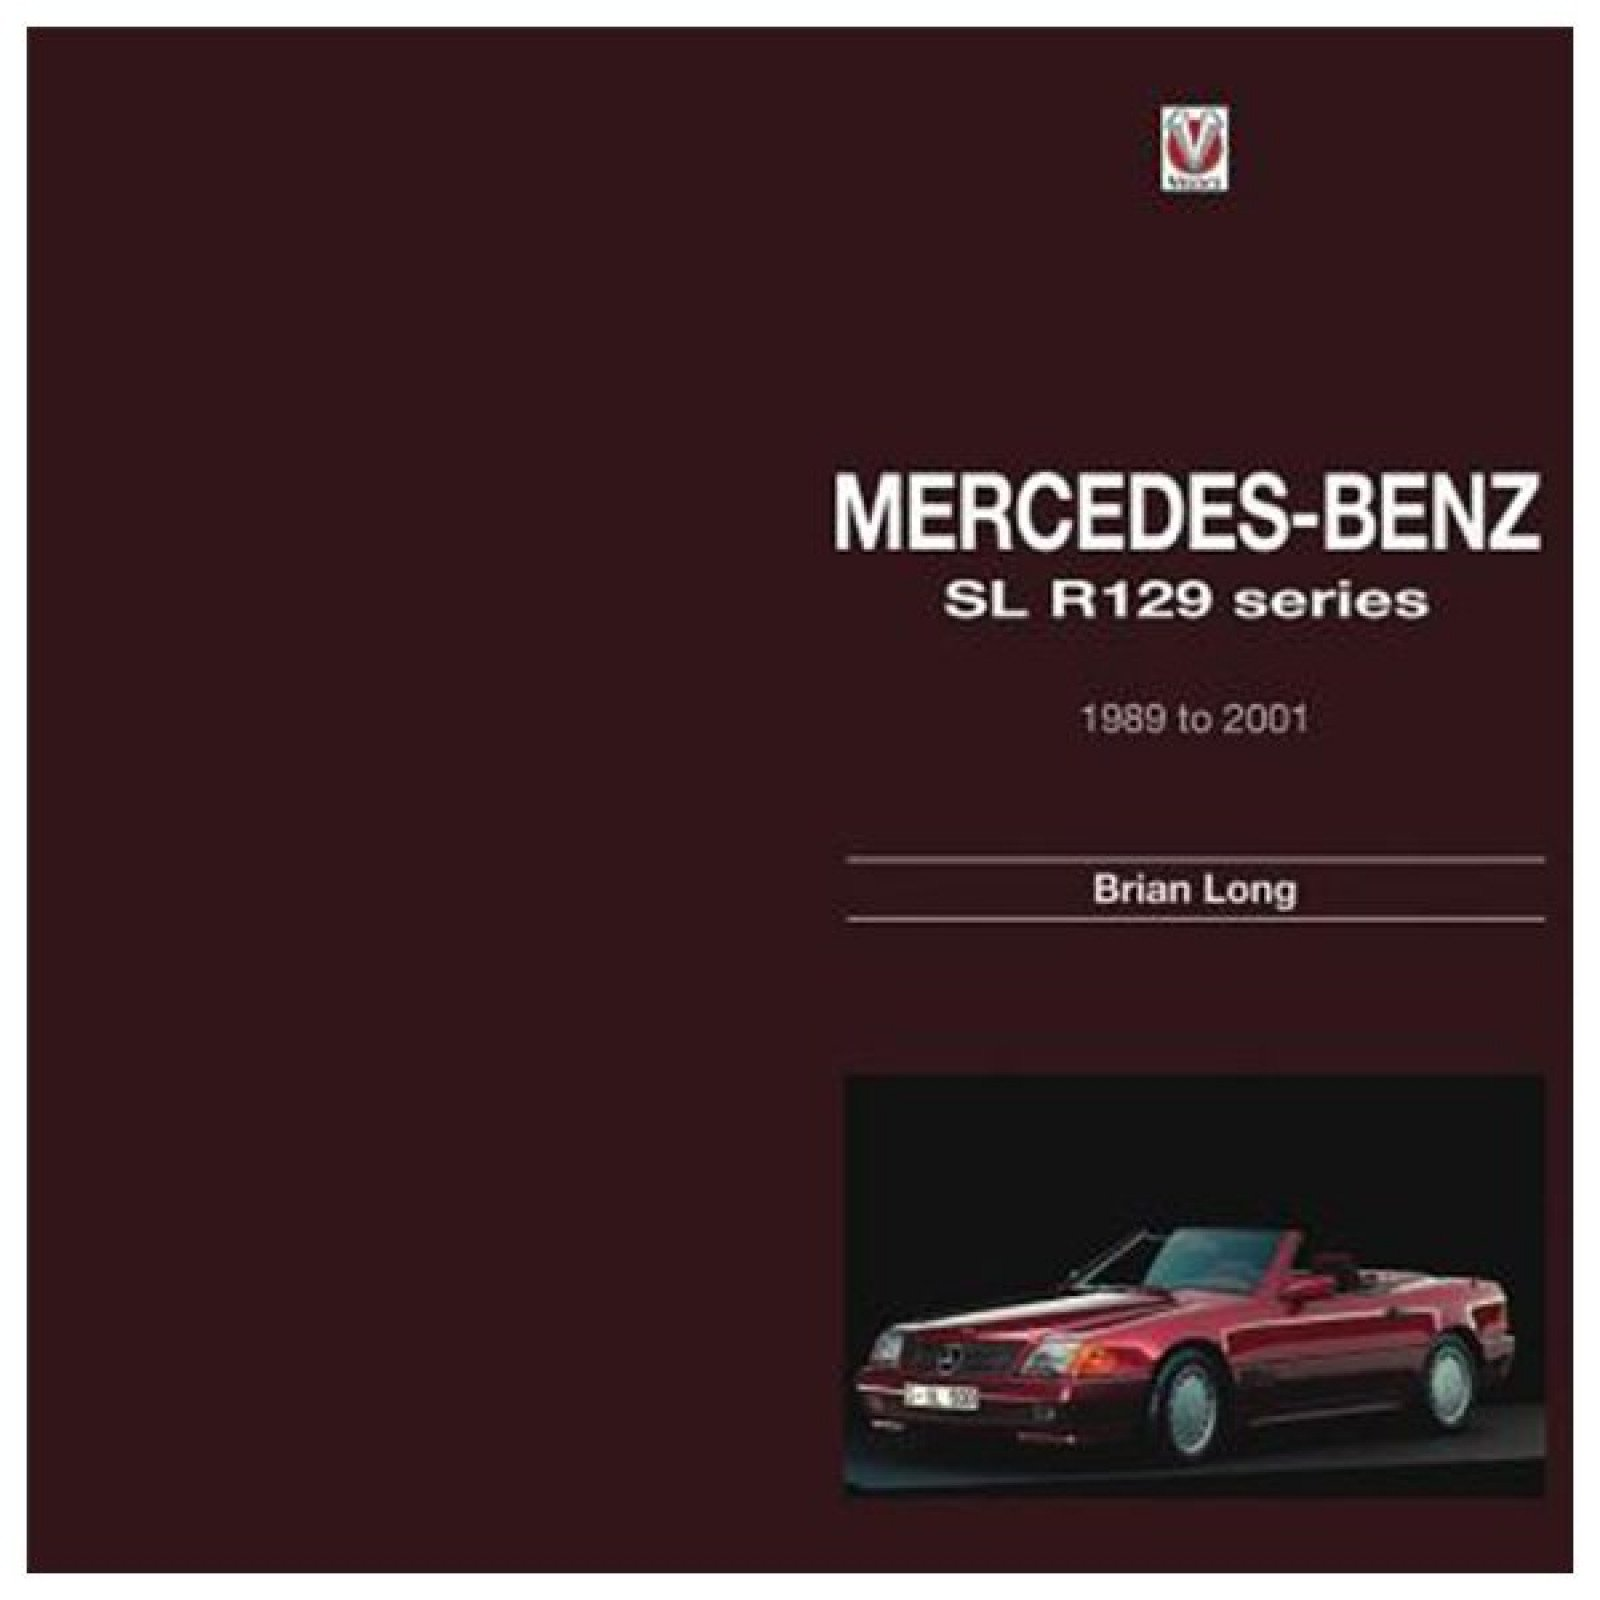 Mercedes benz sl r129 series 1989 to 2001 book by brian for Books mercedes benz